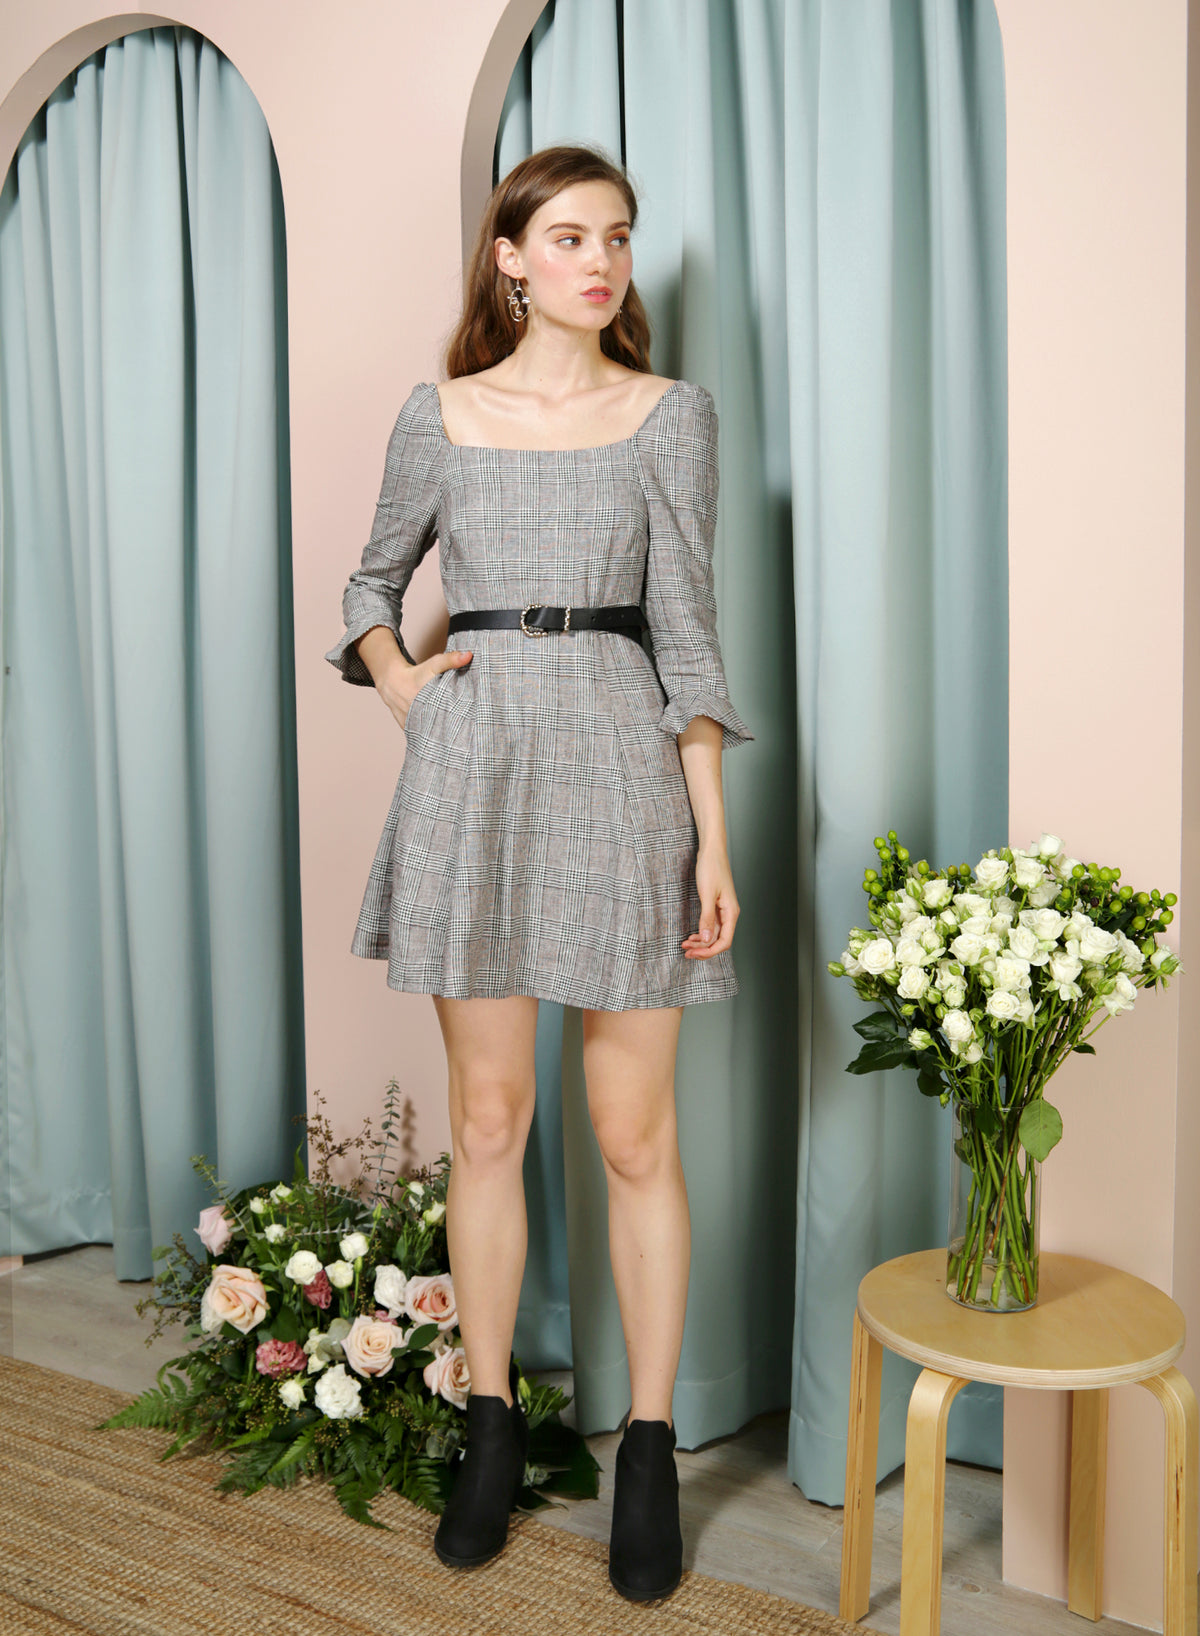 JOYOUS Square Neckline Dress (B/W Checks) - And Well Dressed